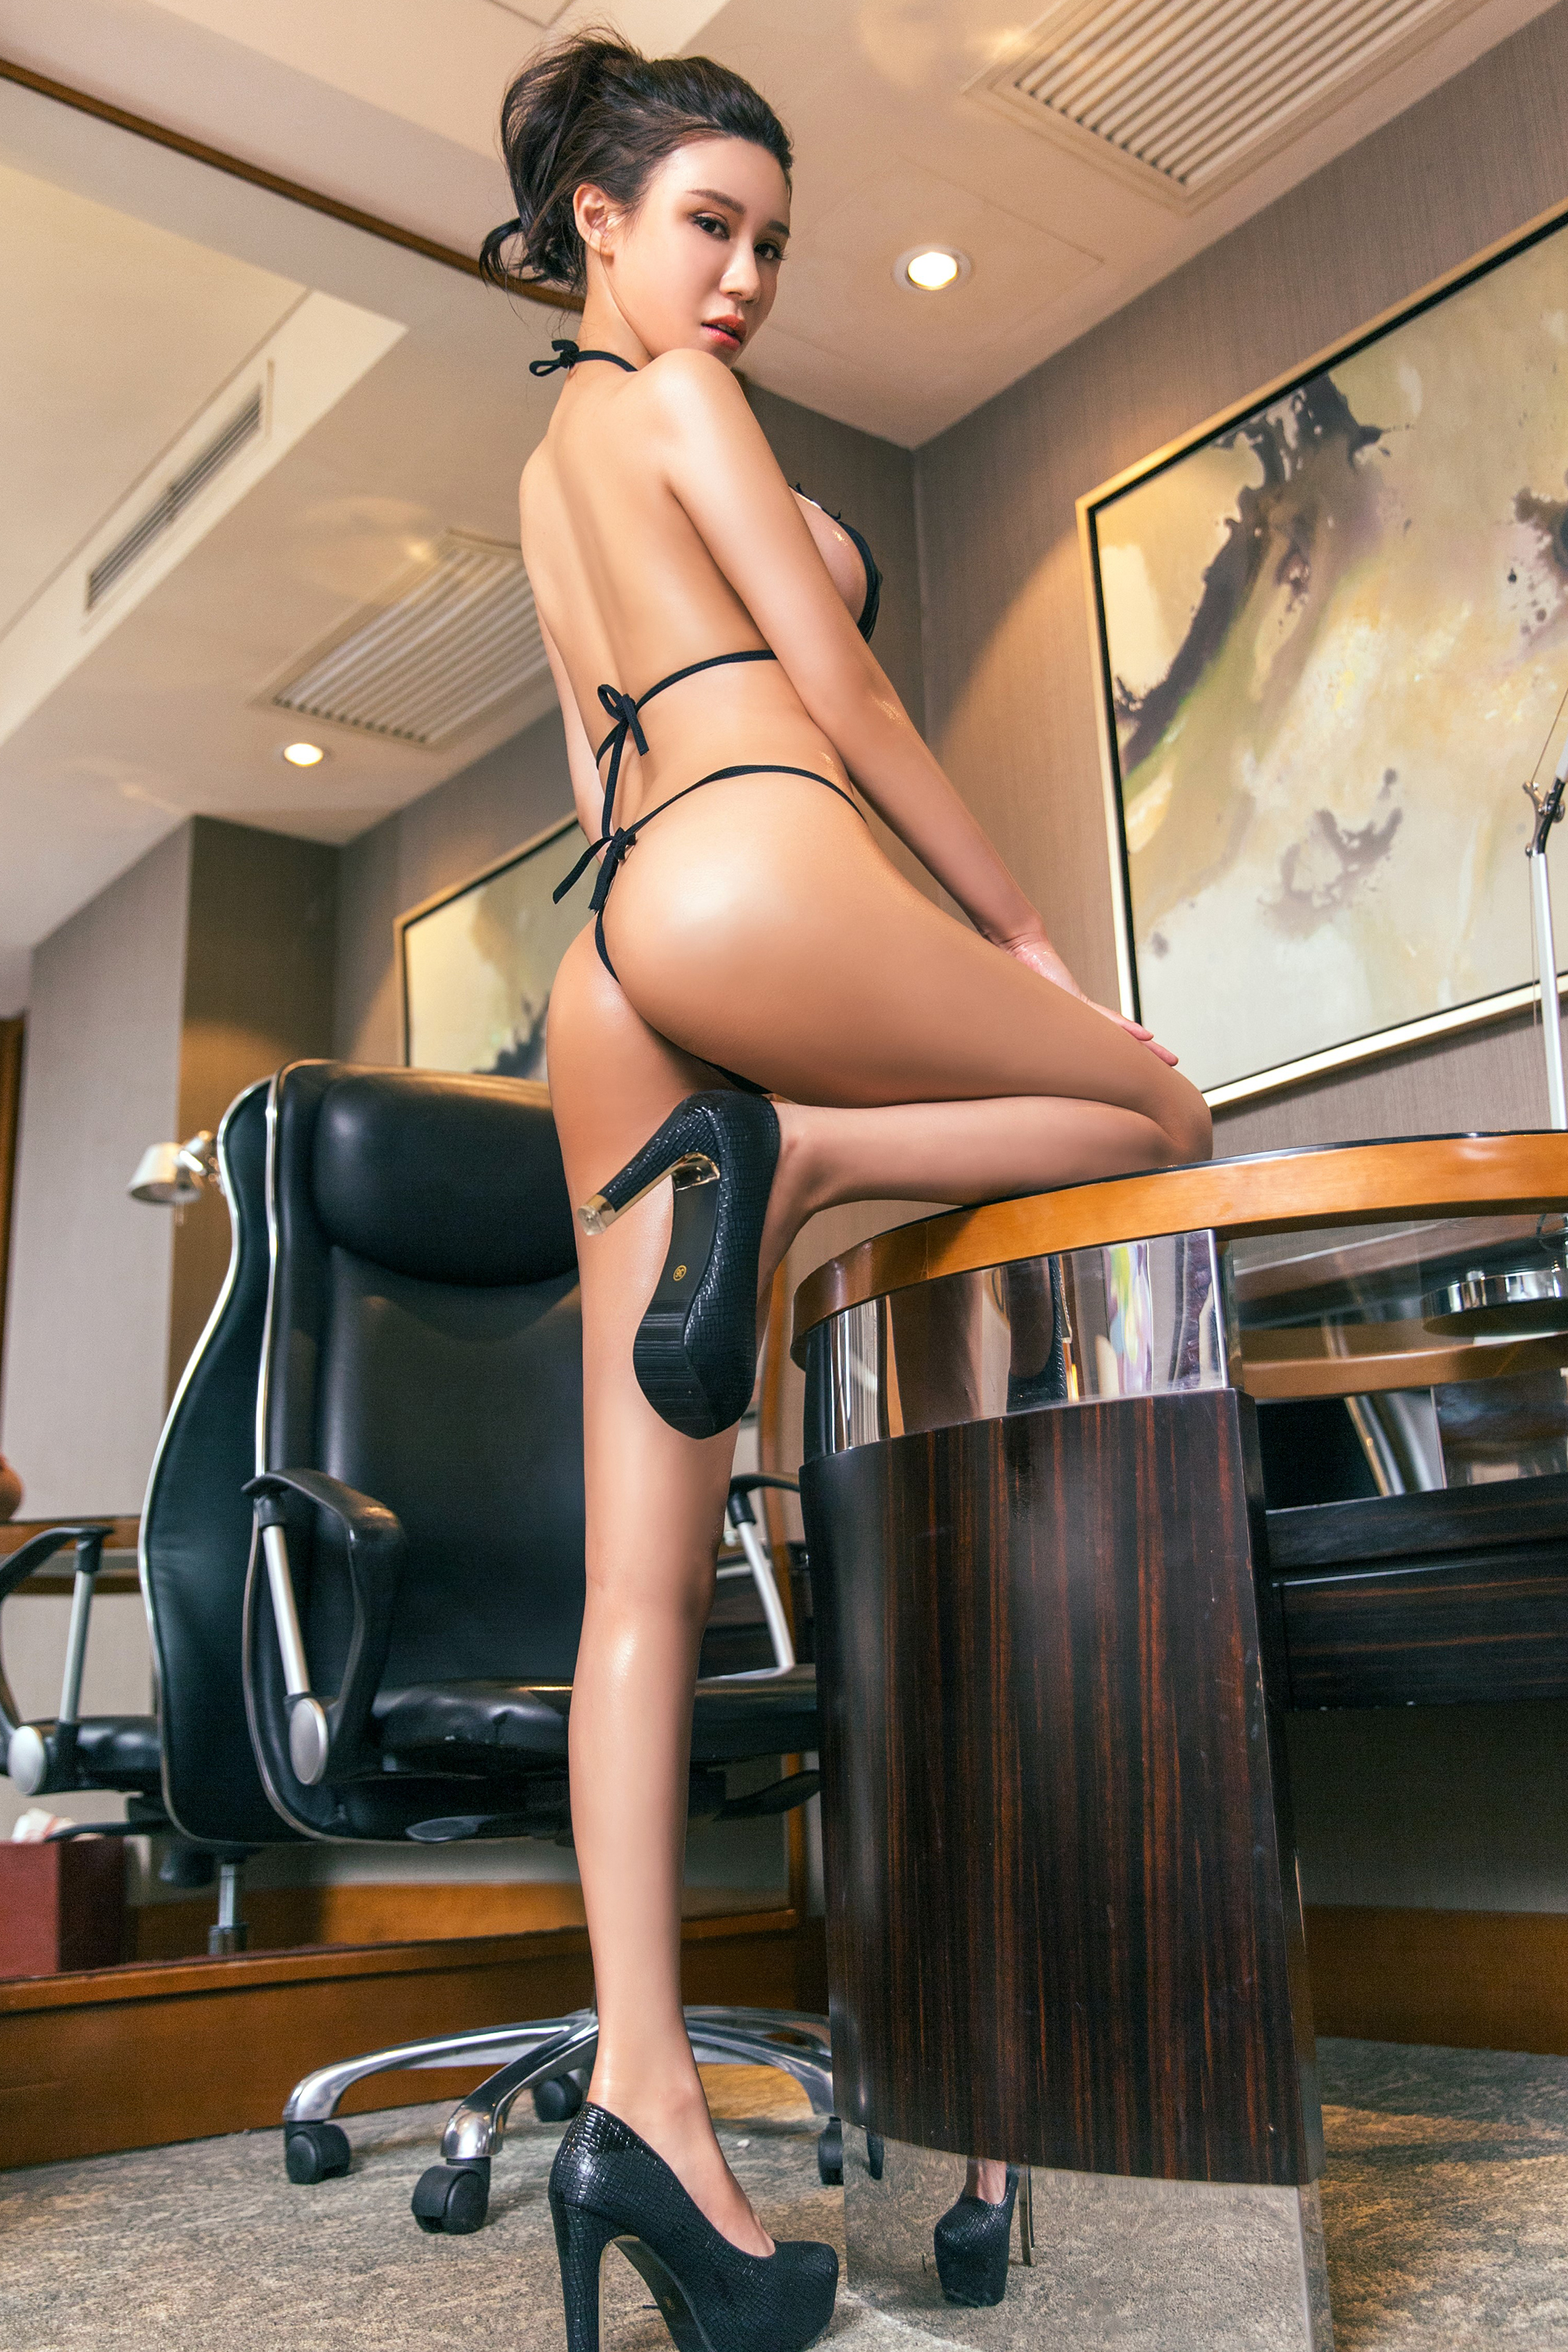 People 2000x3000 body oil gloss sideboob pumps high heels G-strings black bikini office office girl hairbun back ass bent legs standing arched back Asian looking back looking at viewer legs rear view nipple through clothing women Chinese China